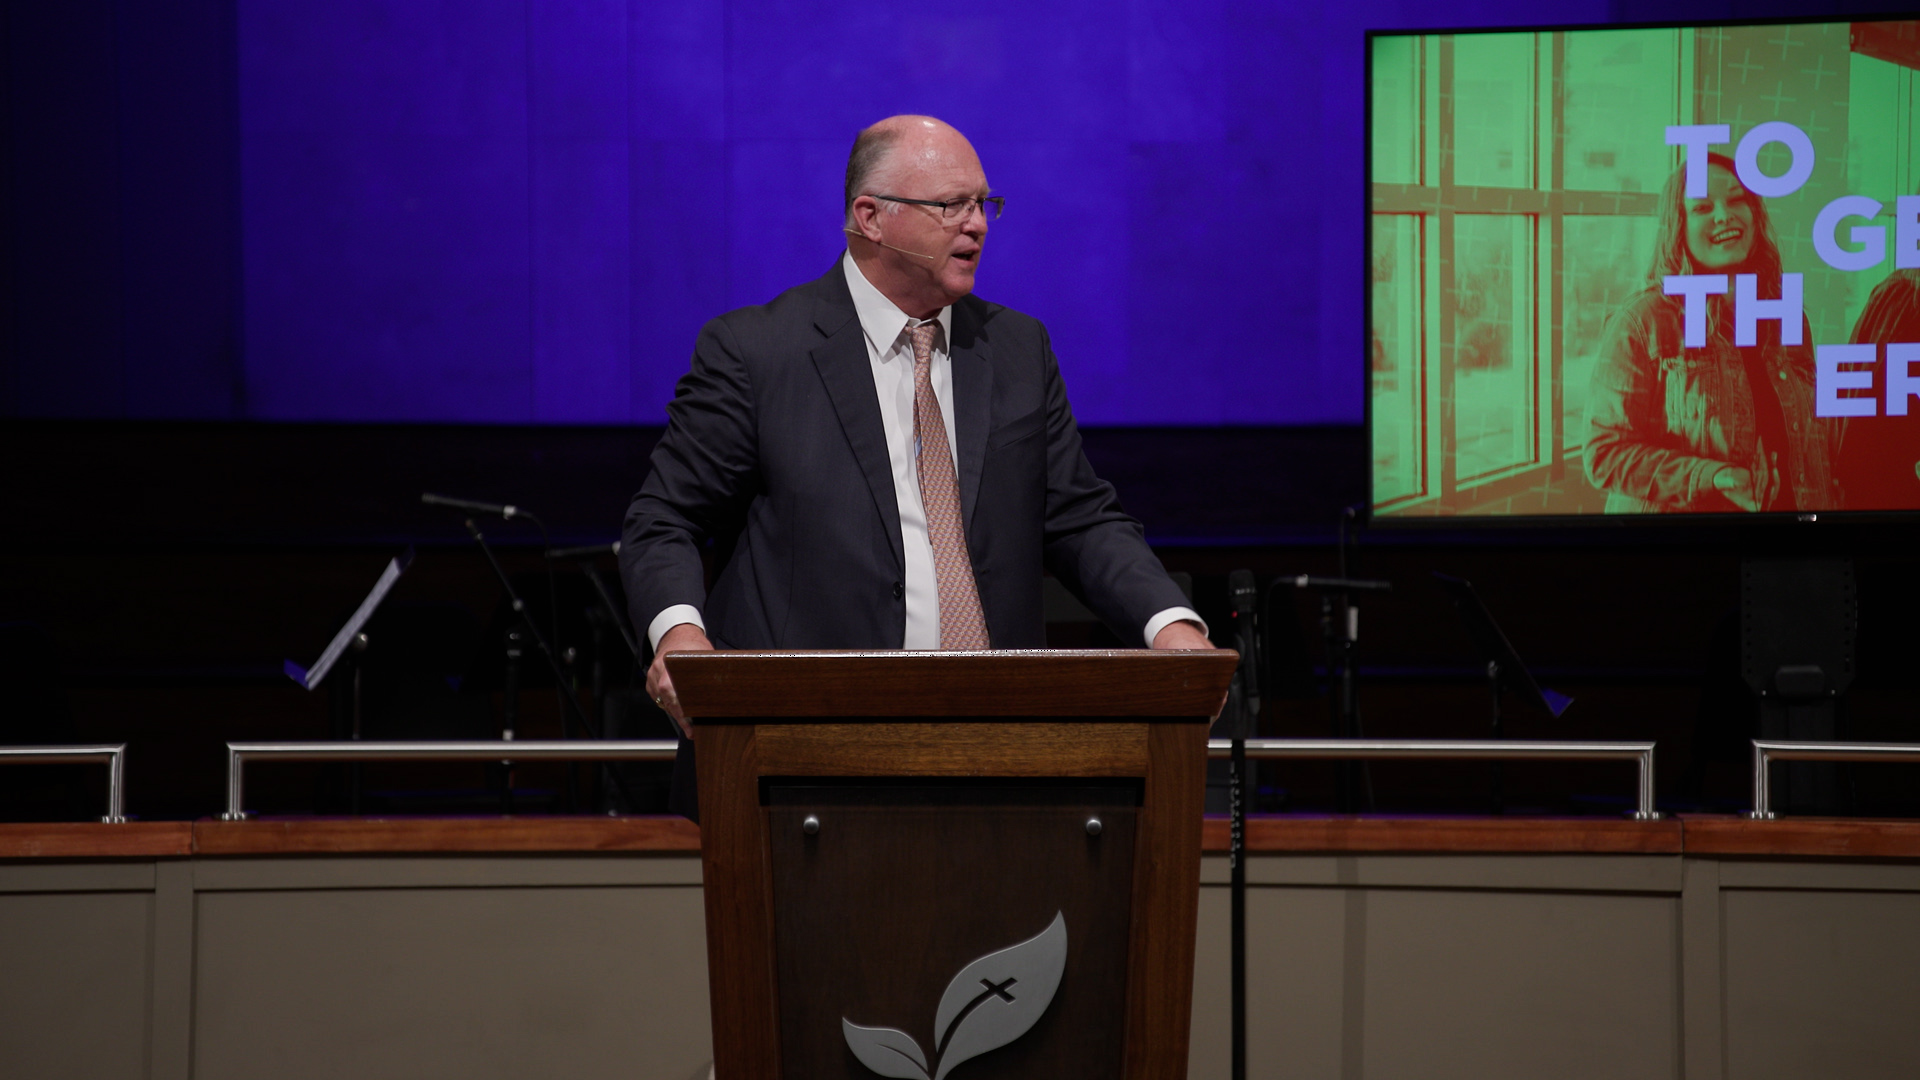 Pastor Paul Chappell: Together